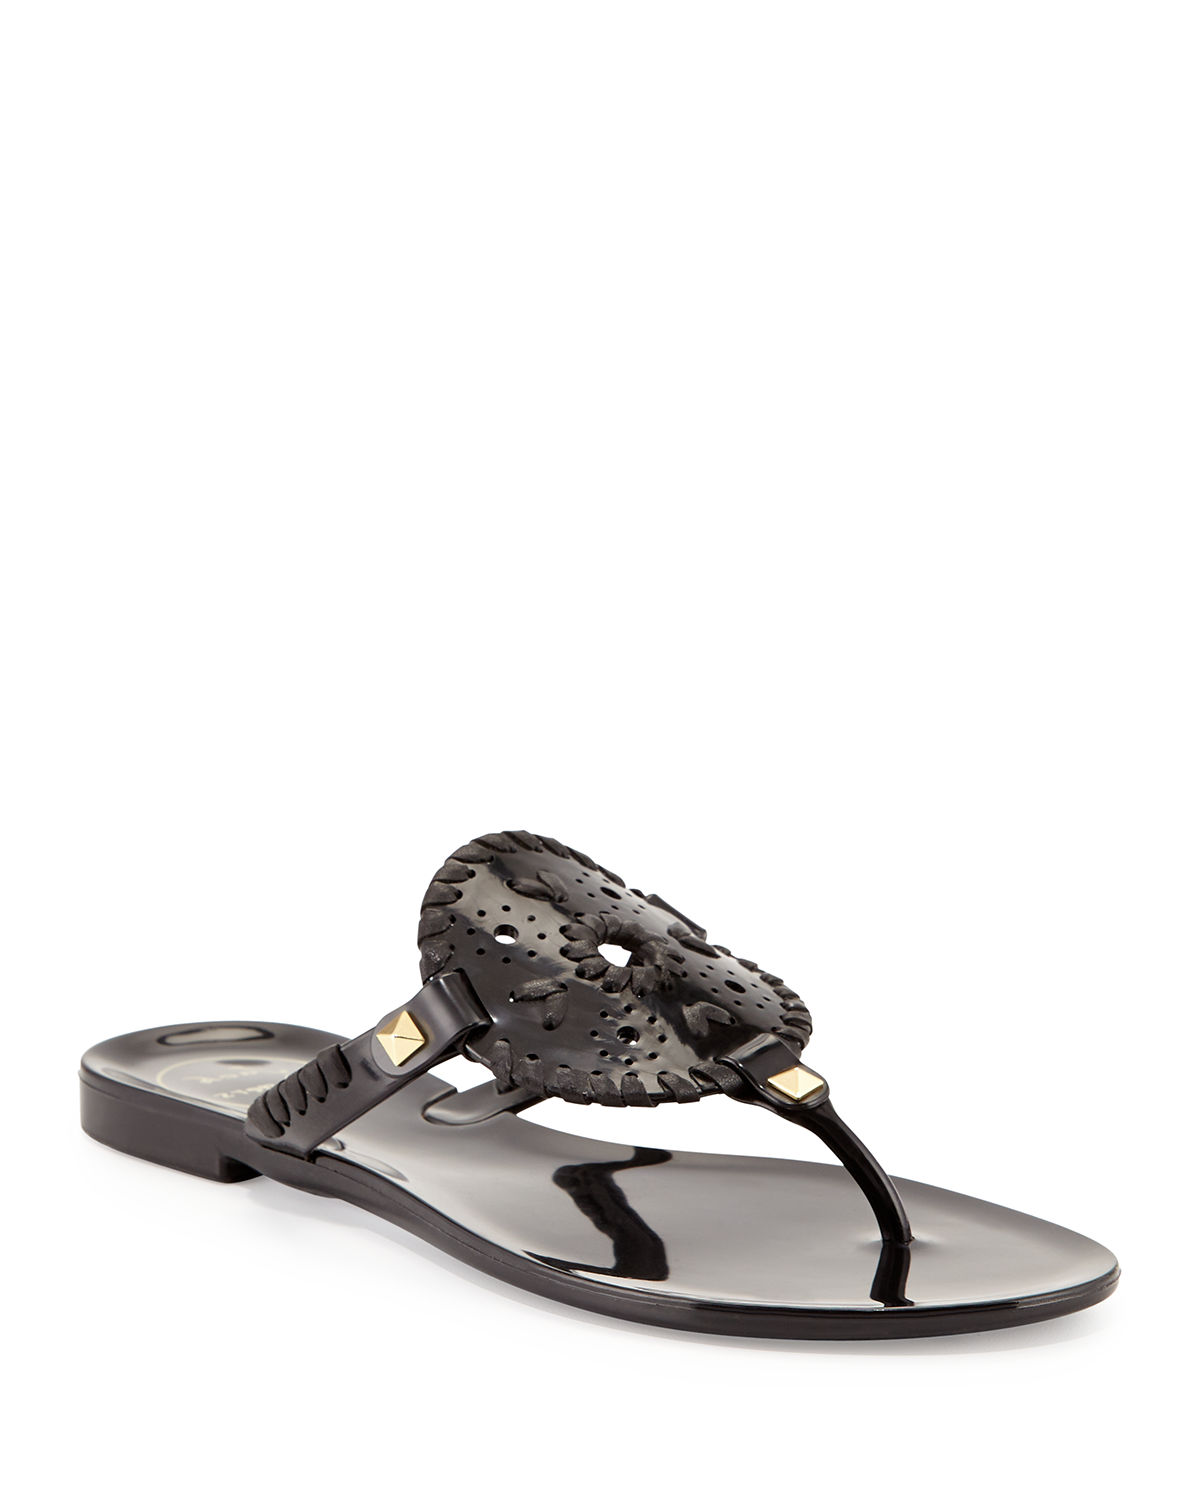 837e1586b0bc Jack Rogers Georgica Jelly Thong Sandals In Black